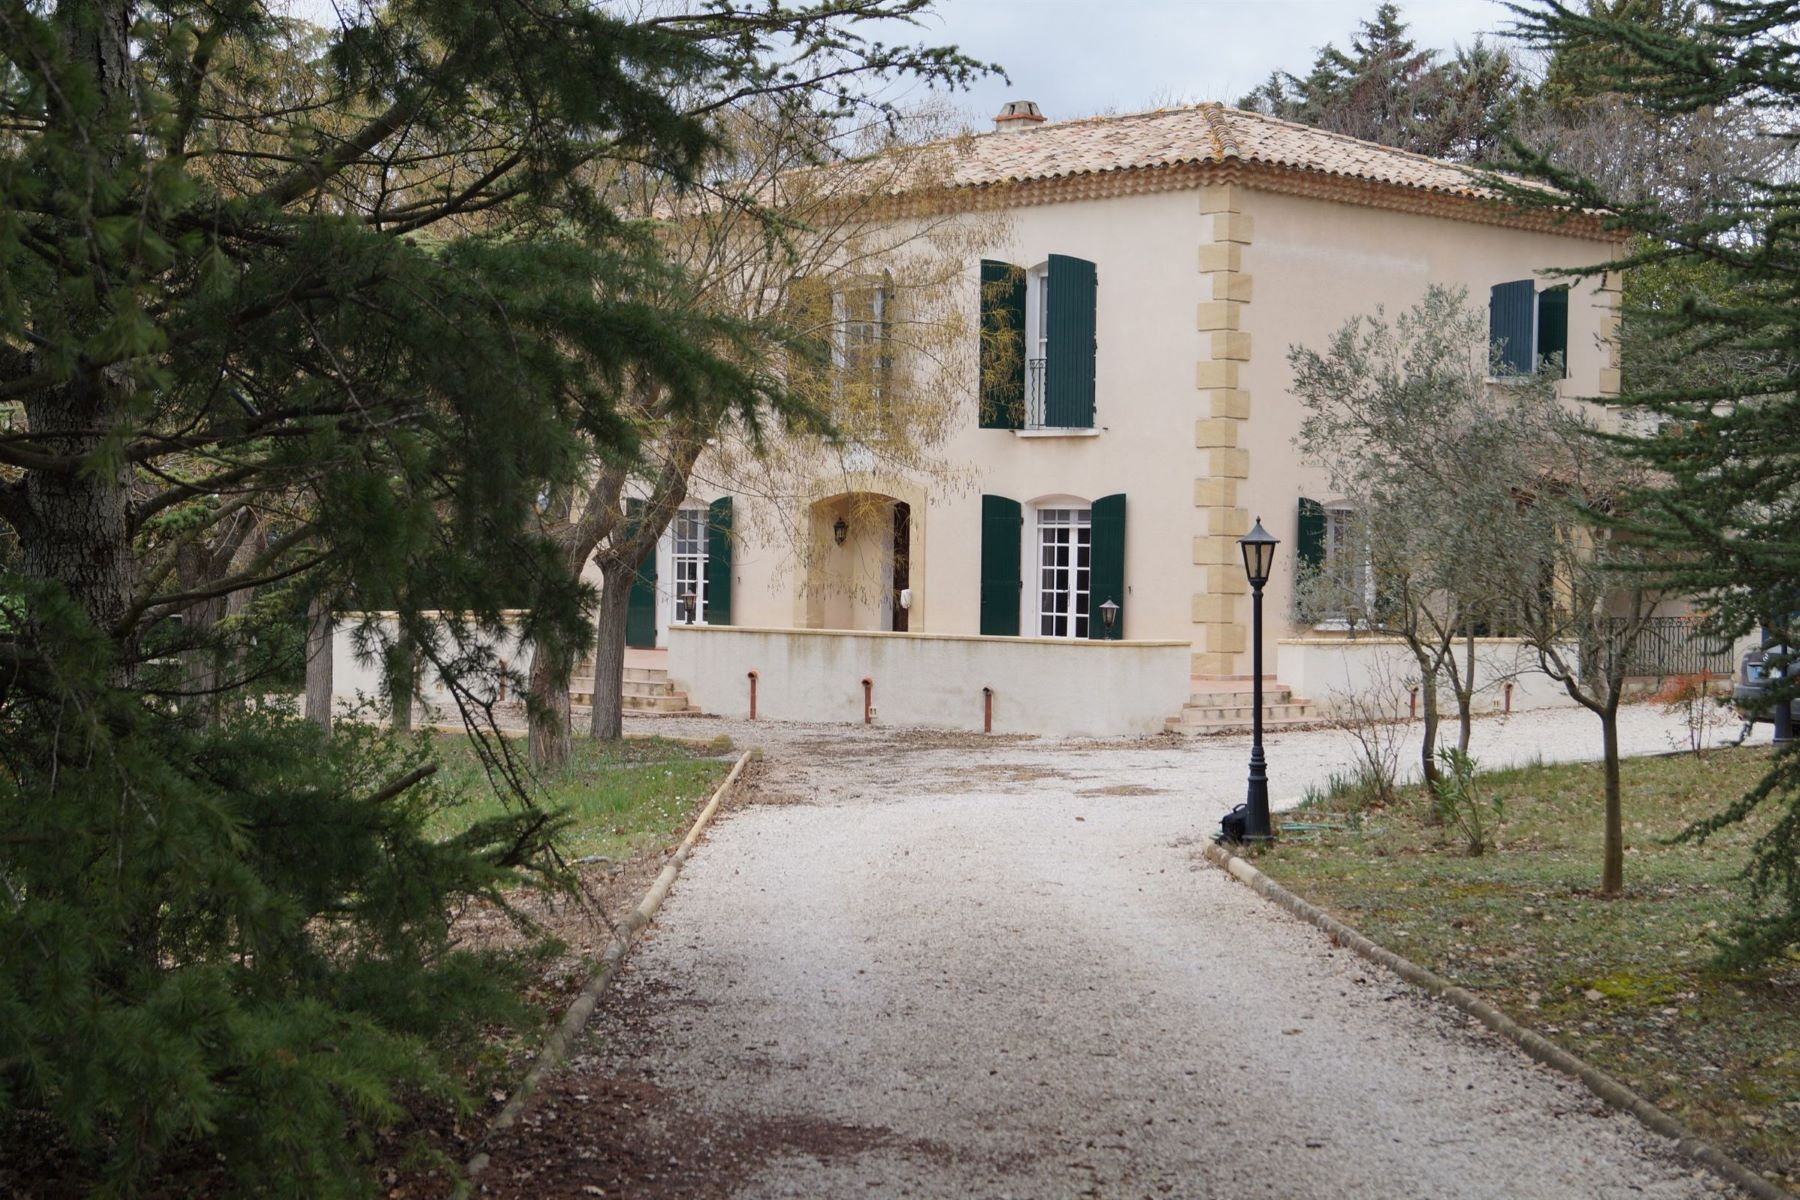 Single Family Home for Sale at 15 MINUTES FROM AIX CENTER Aix-En-Provence, Provence-Alpes-Cote D'Azur, 13090 France